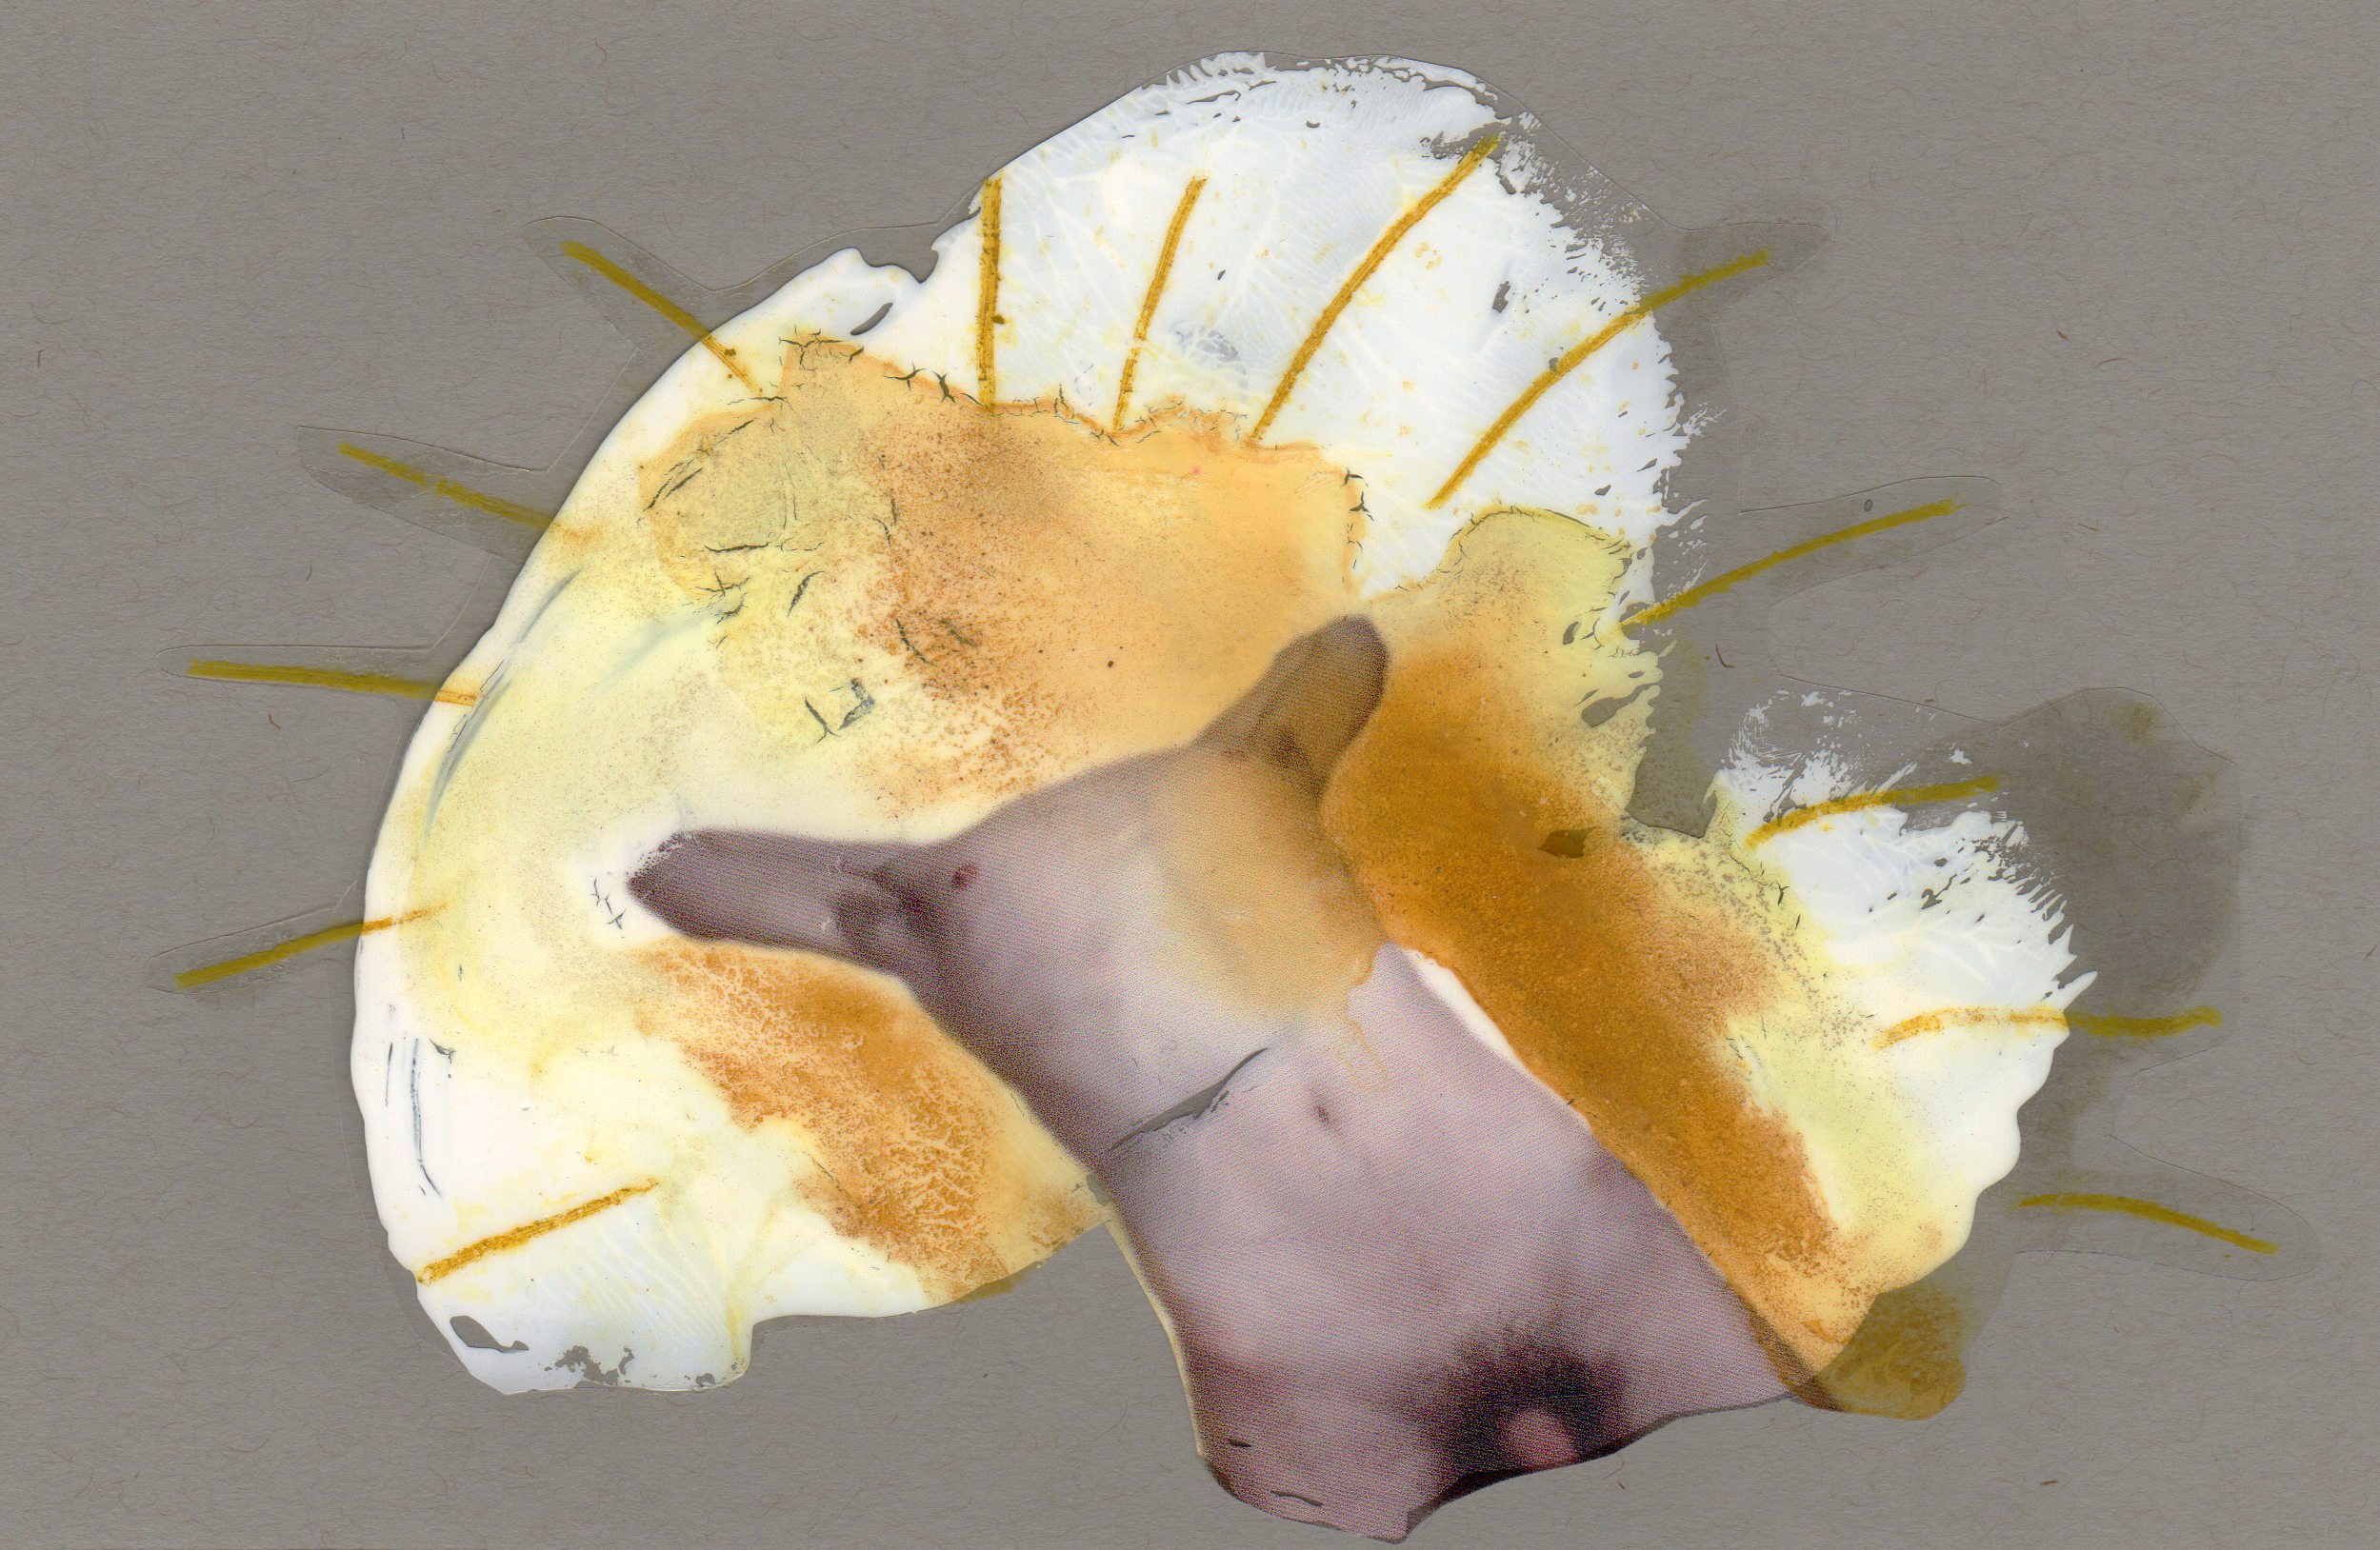 Ecstasy, 2014, paint transparency archival ink and paper, 8.5x5.5 inches